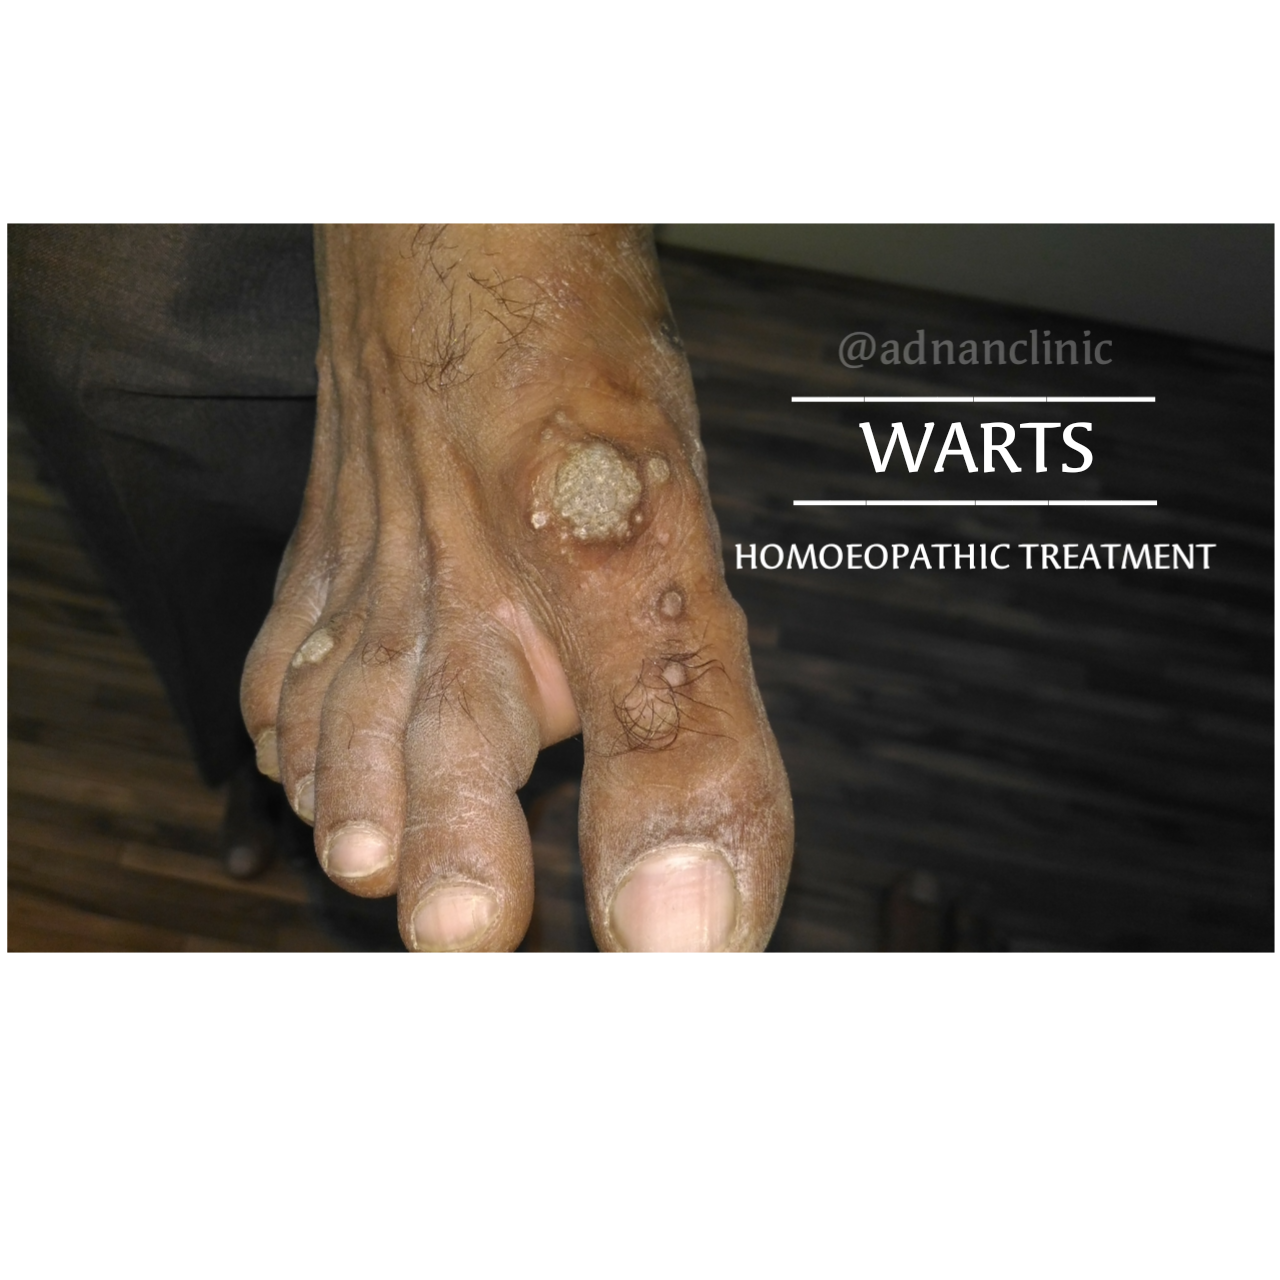 WARTS || ITS CAUSE || TYPES || SIGNS AND SYMPTOMS